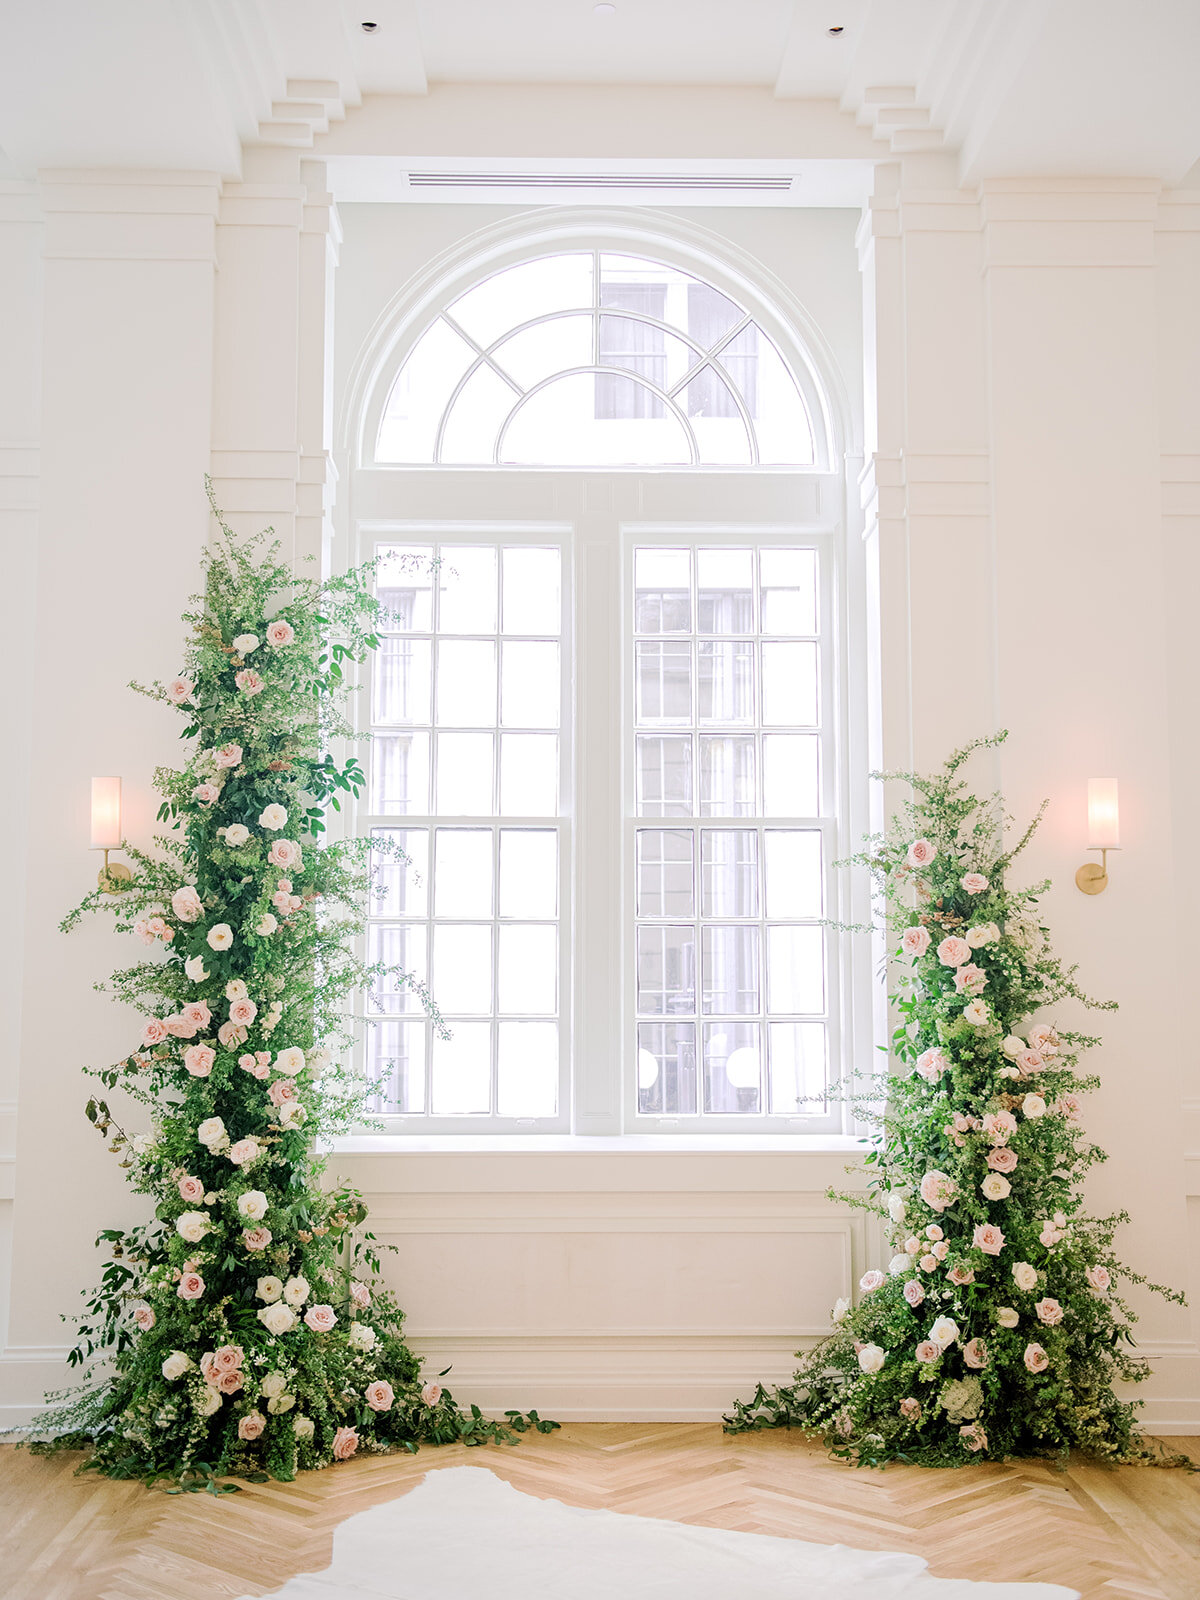 Asymmetrical floral installation growing up either side of the windows in the Noelle. Nashville Wedding Florist.